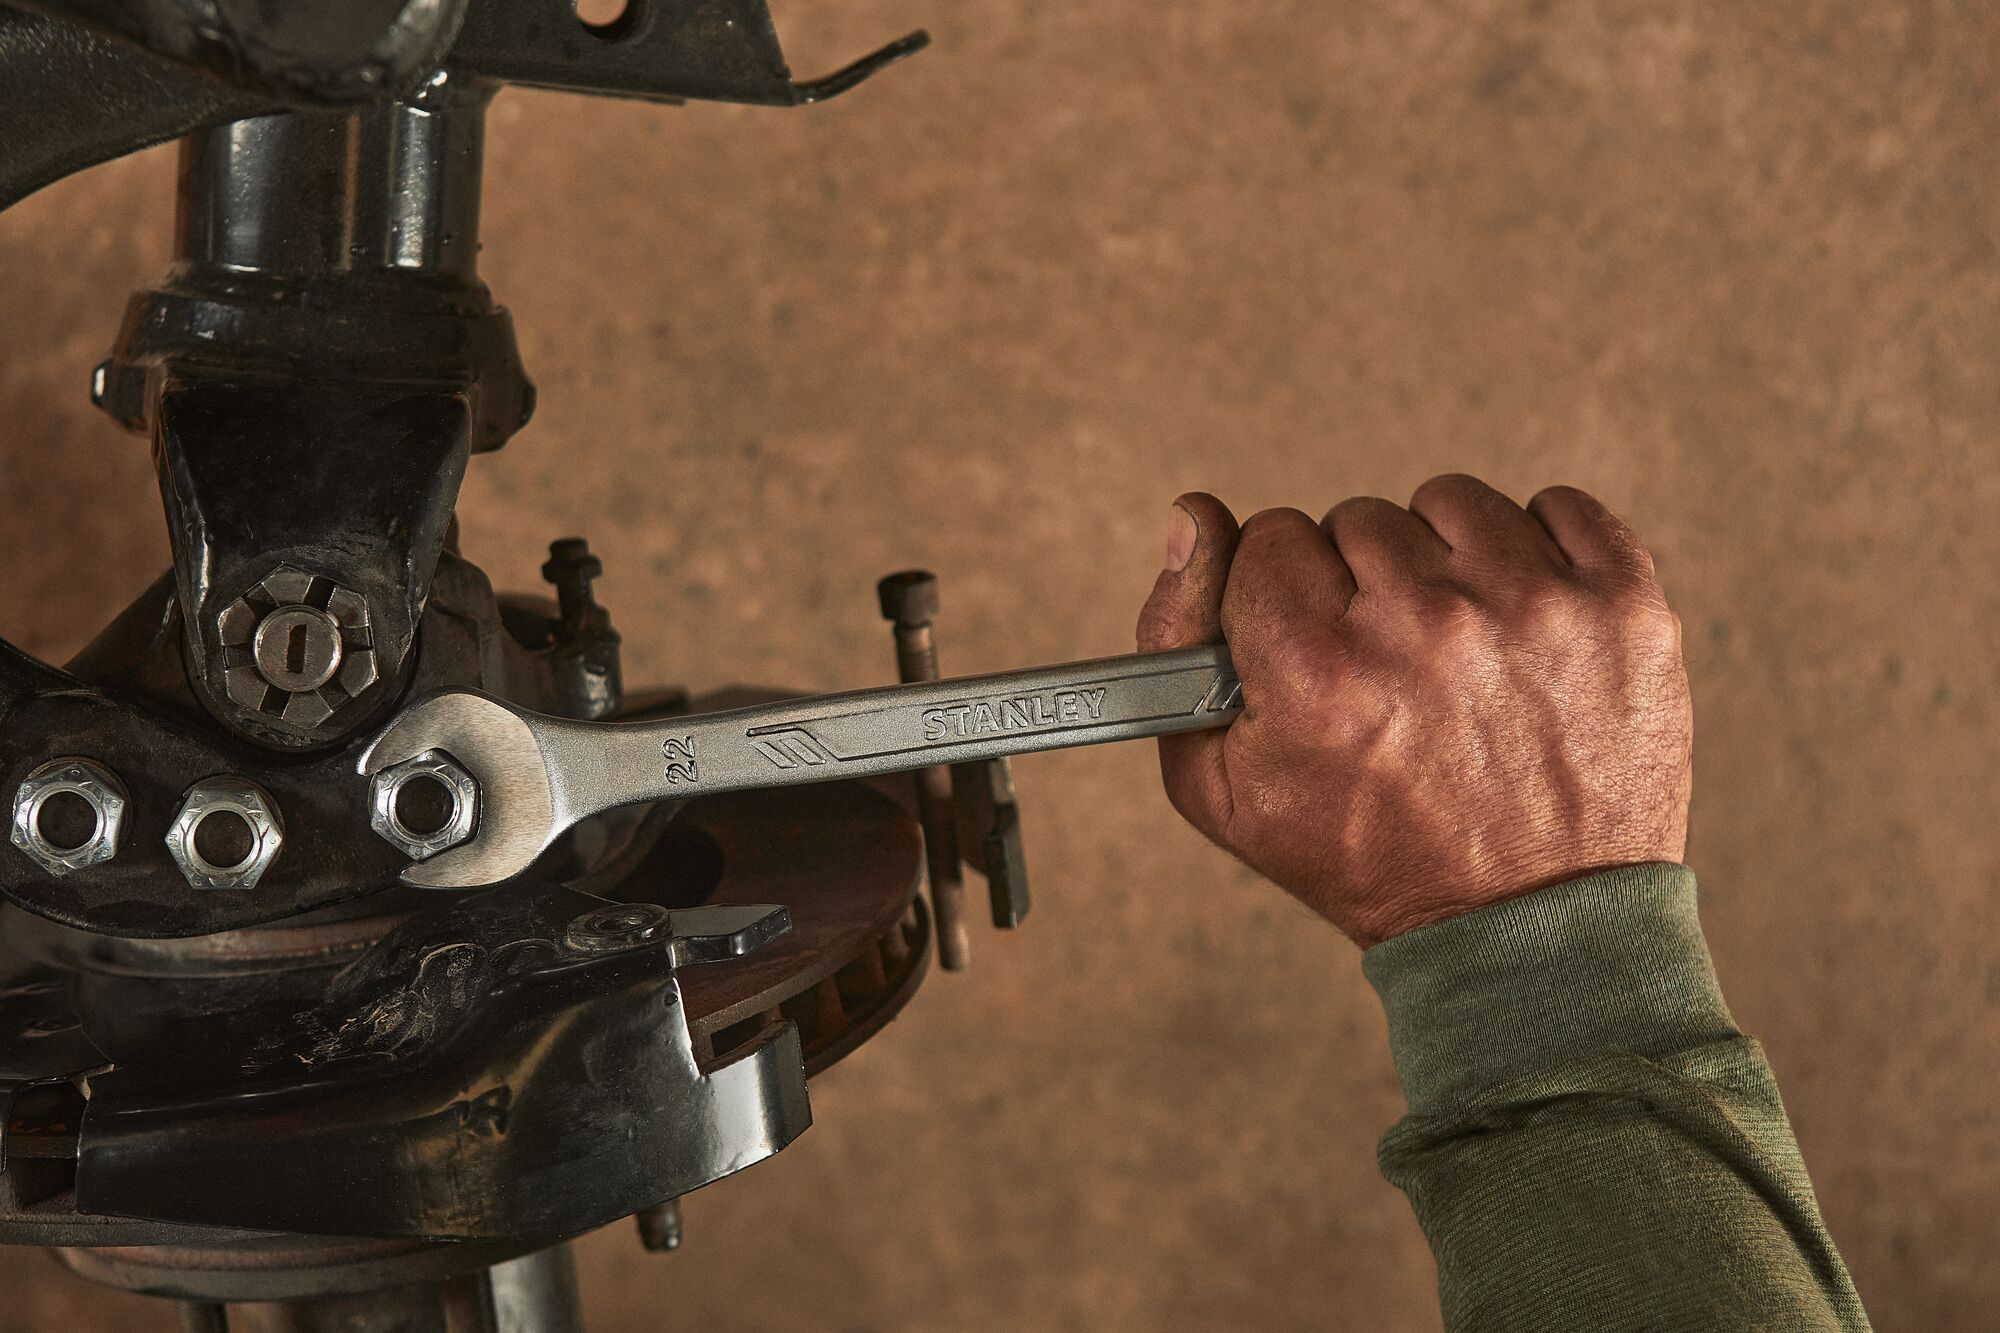 Close up of mechanic using a STANLEY Antislip Wrench on a car's engine